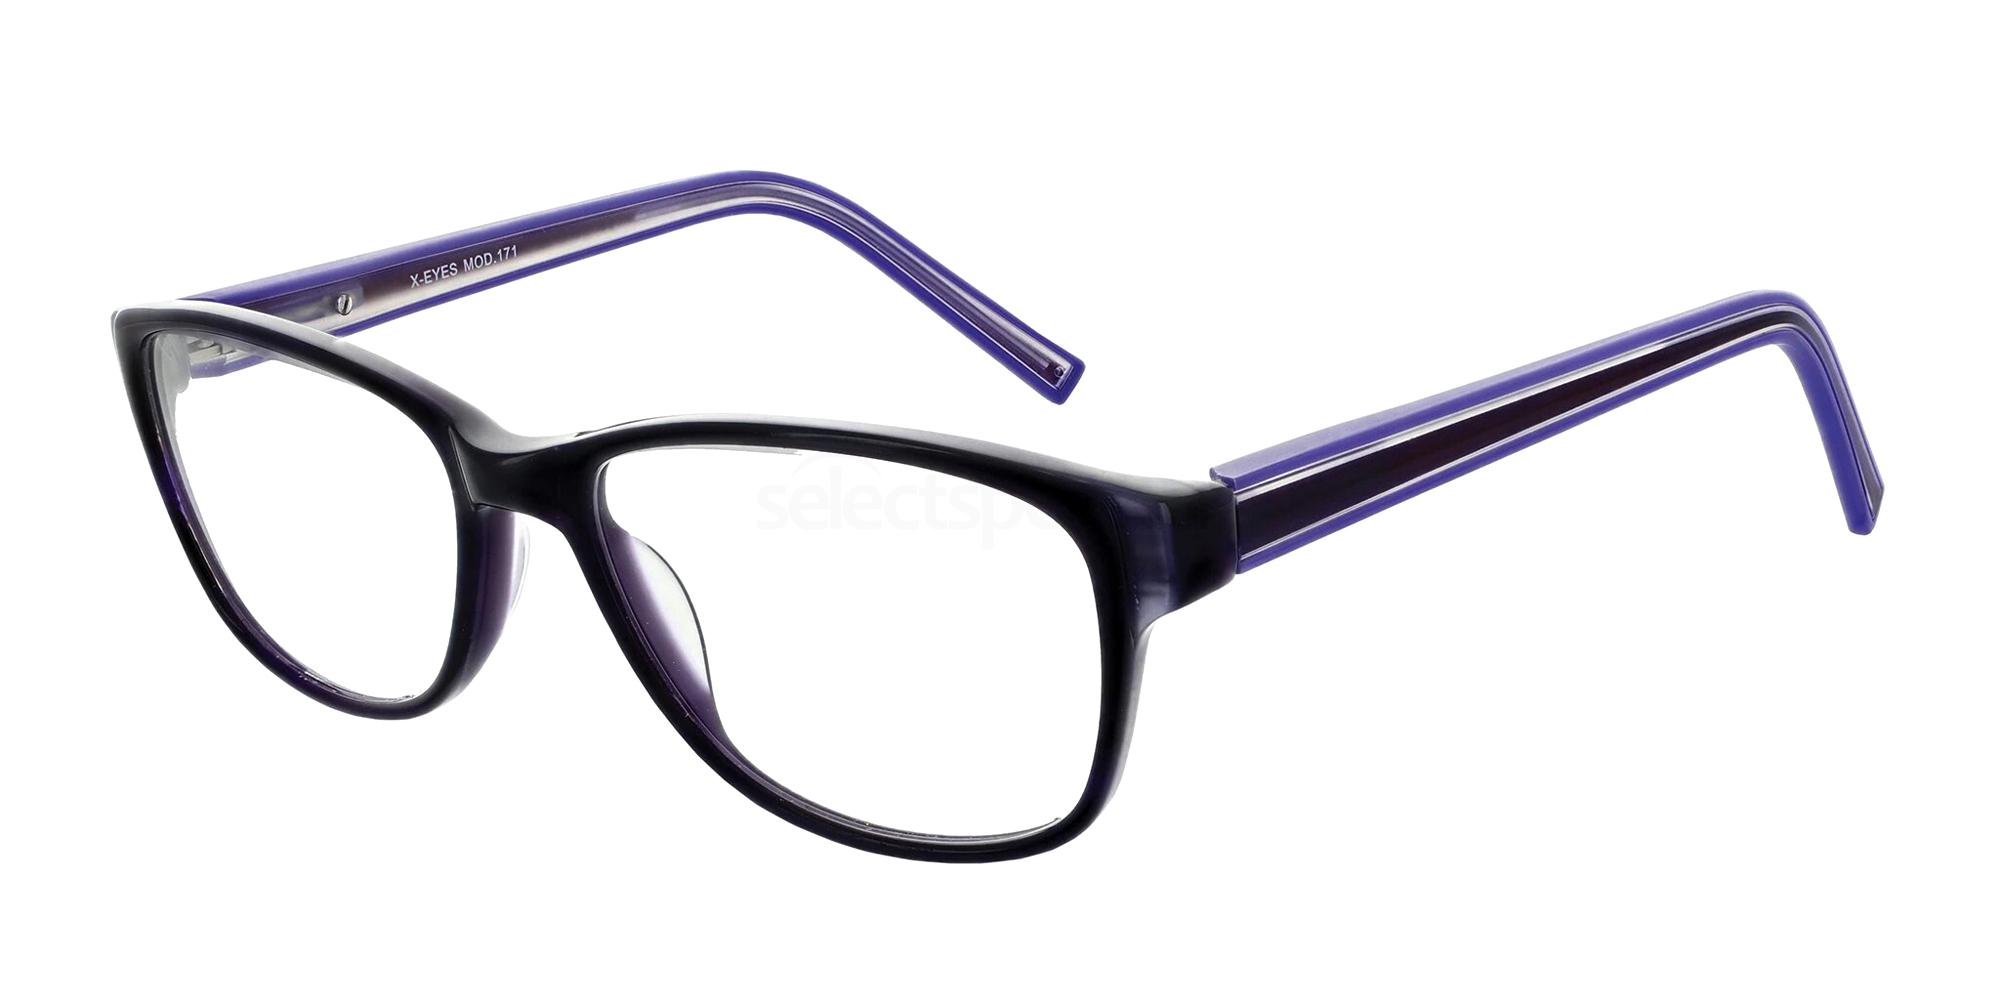 Purple 171 Glasses, X-Eyes